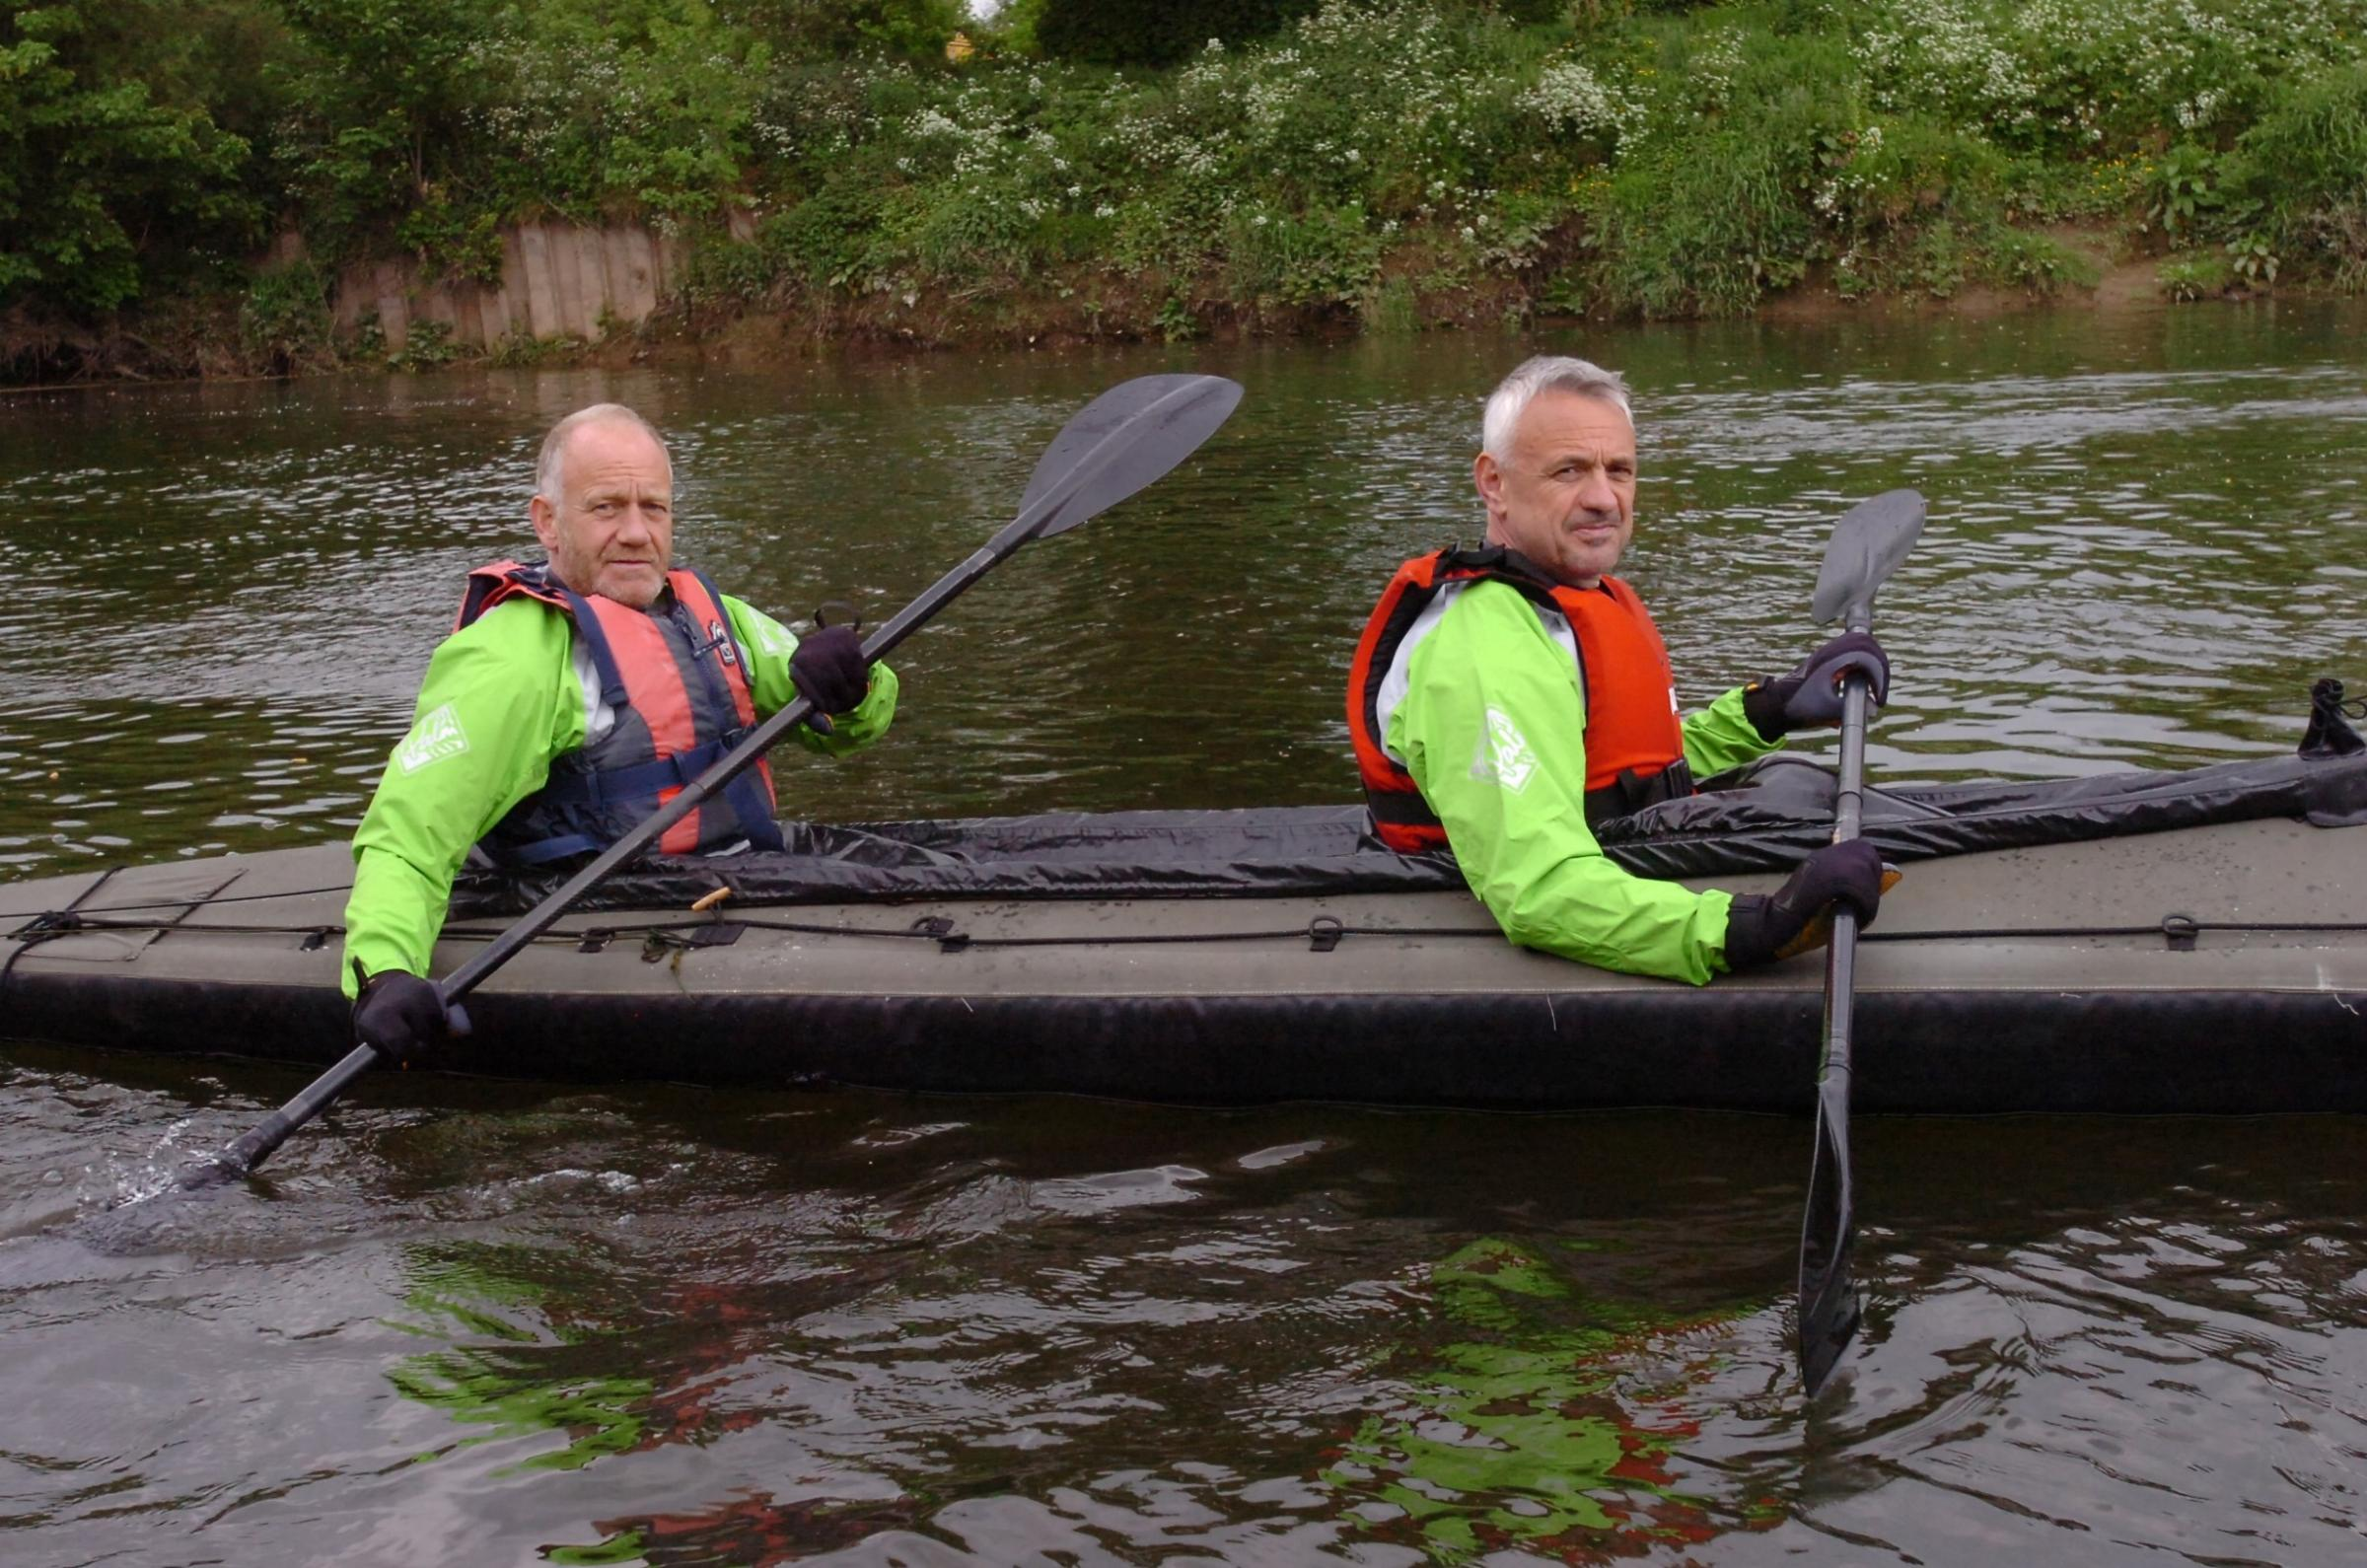 Hereford canoeists to take on 200km D-Day crossing